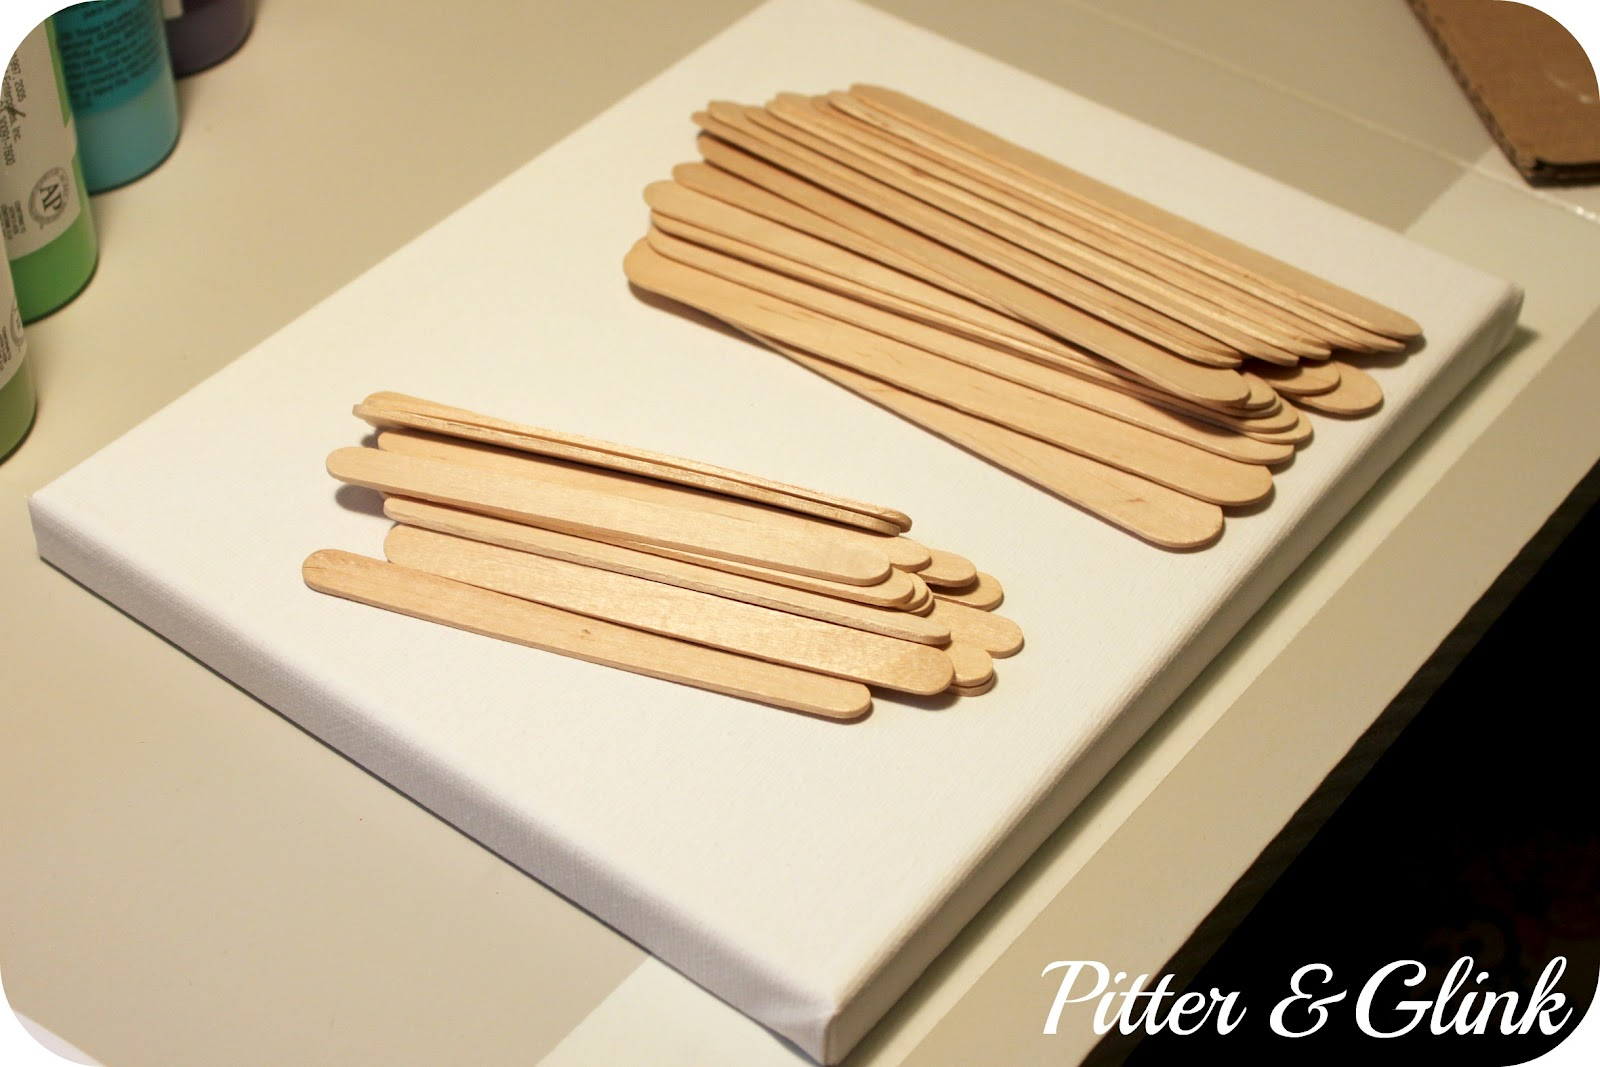 PitterAndGlink: {Upscale Summer Popsicle Stick Art}